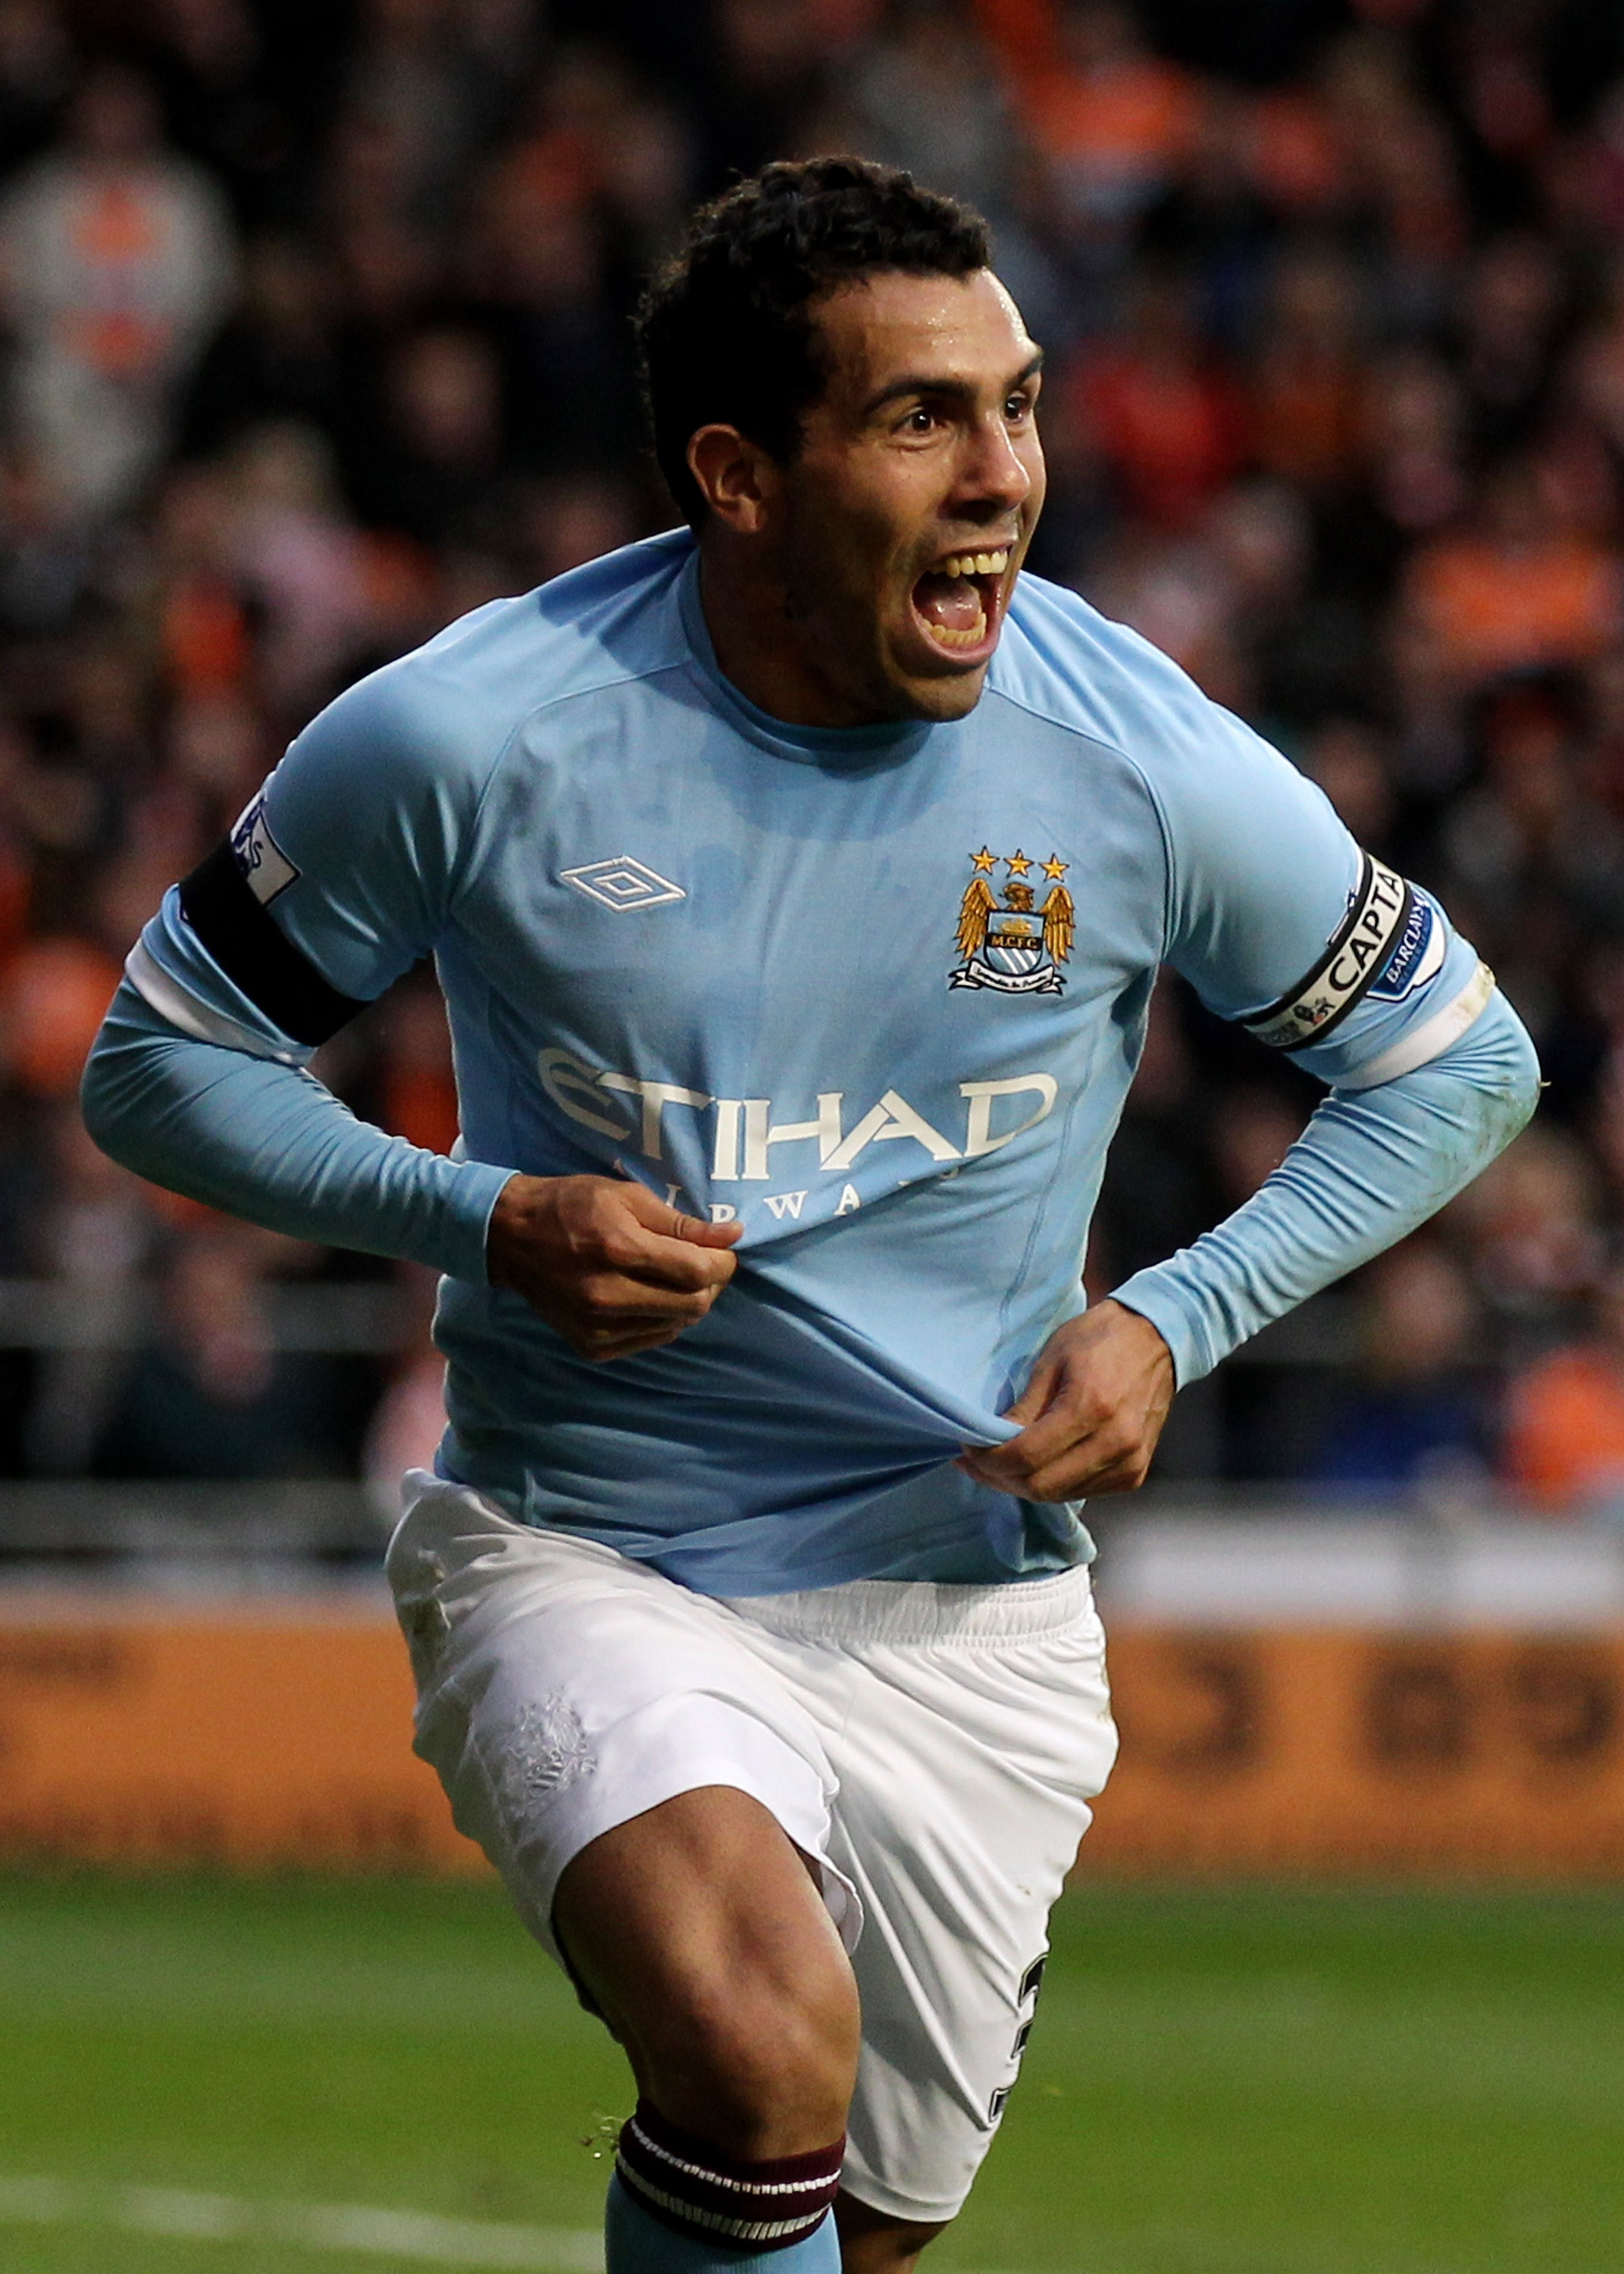 BLACKPOOL, ENGLAND - OCTOBER 17:  Carlos Tevez of Manchester City celebrates scoring the opening goal during the Barclays Premiership match between Blackpool and Manchester City at Bloomfield Road on October 17, 2010 in Blackpool, England.  (Photo by Alex